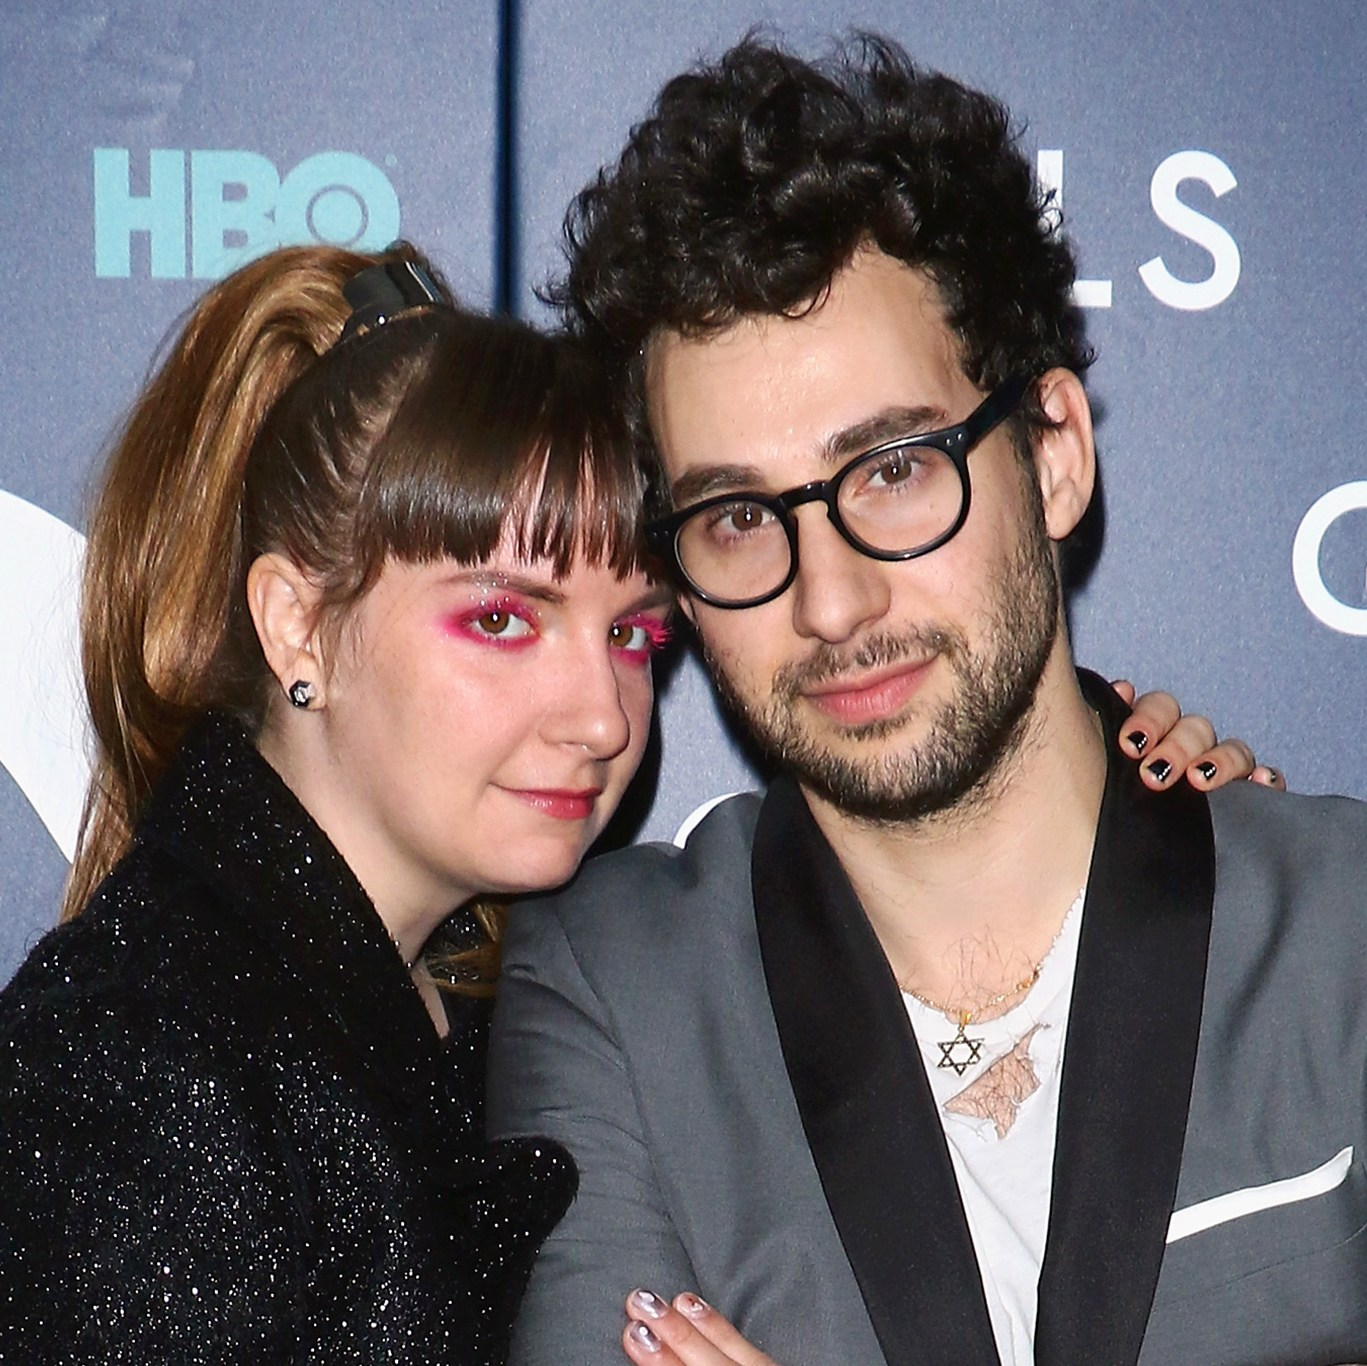 Lena Dunham and Jack Antonoff friendly exes